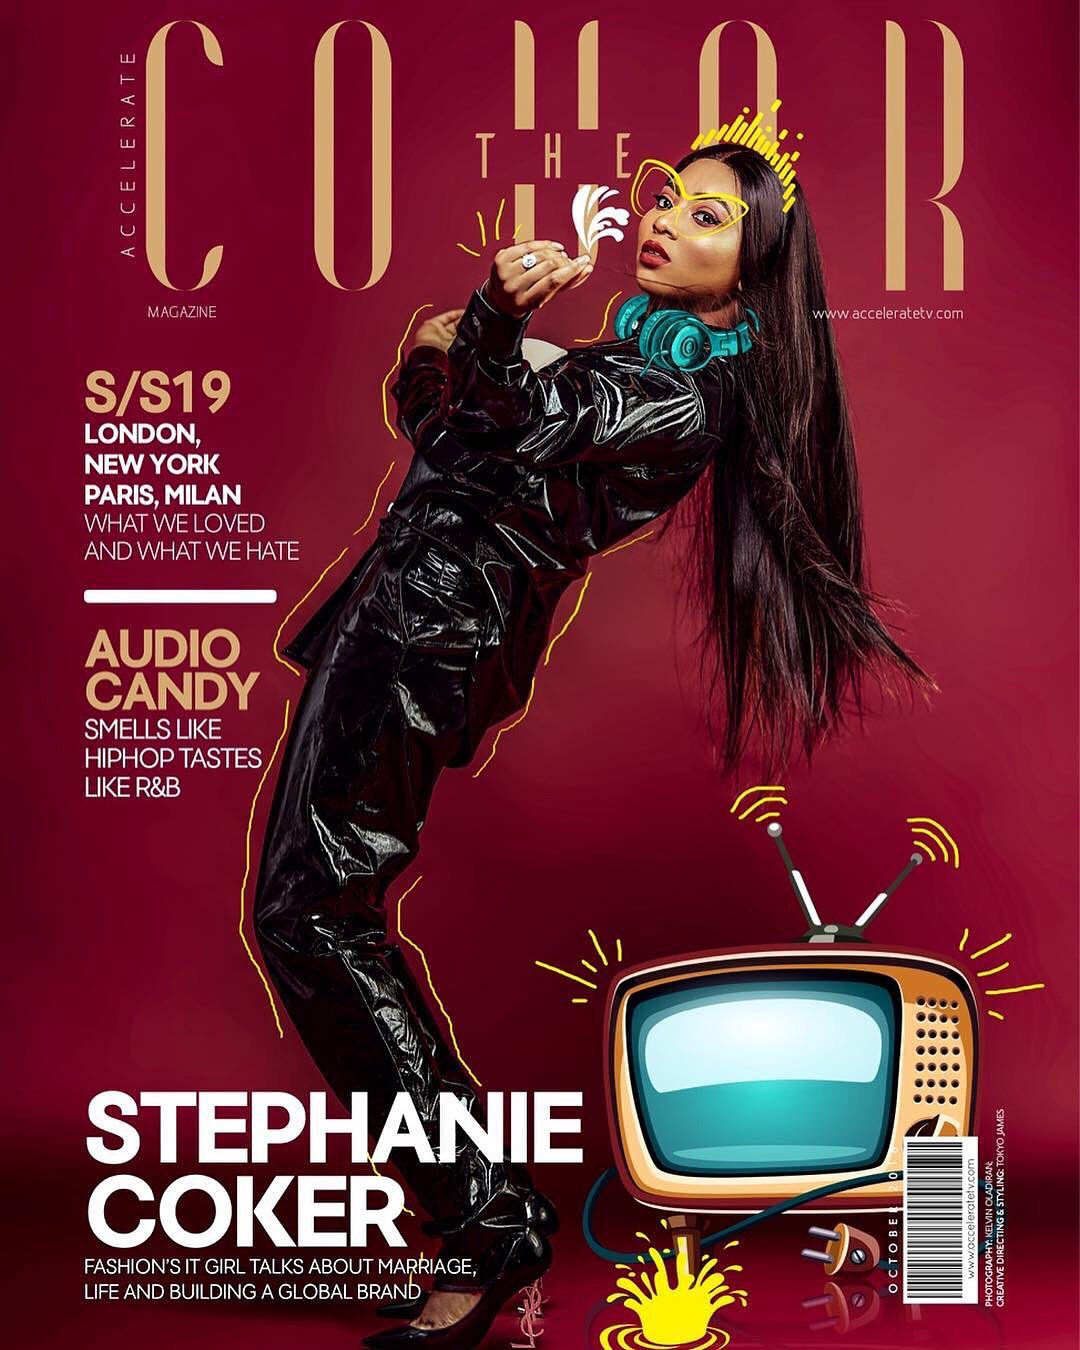 Stephanie Coker on the magazine cover of #thecover for Accelerate TV